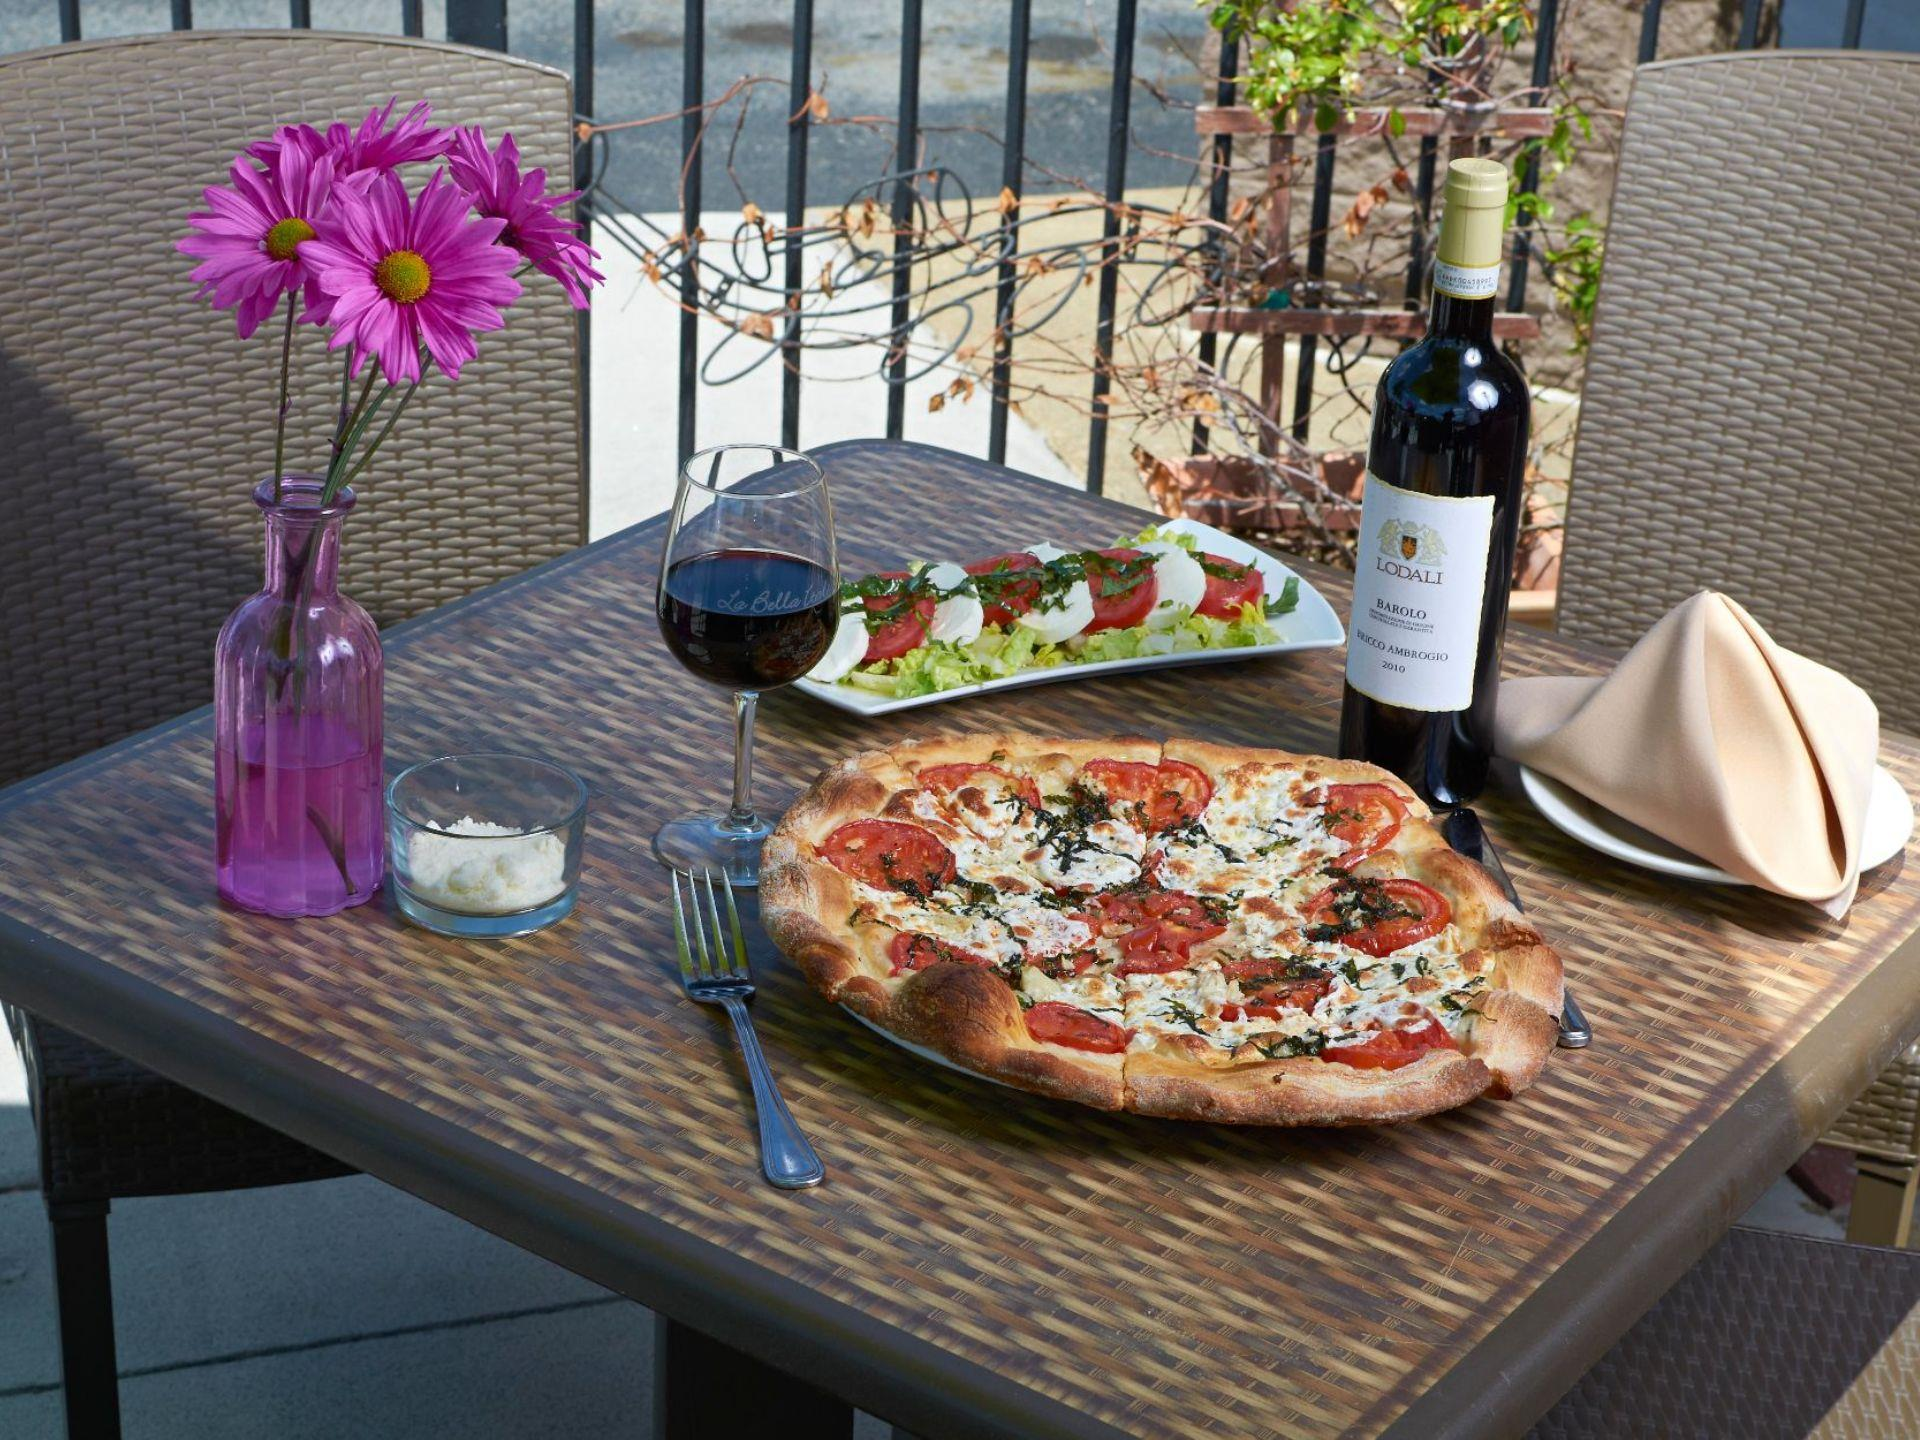 Margarita pizza on a plate with a bottle of red wine, flowers and a tomato mozzarella appetizer plate on a tabletop